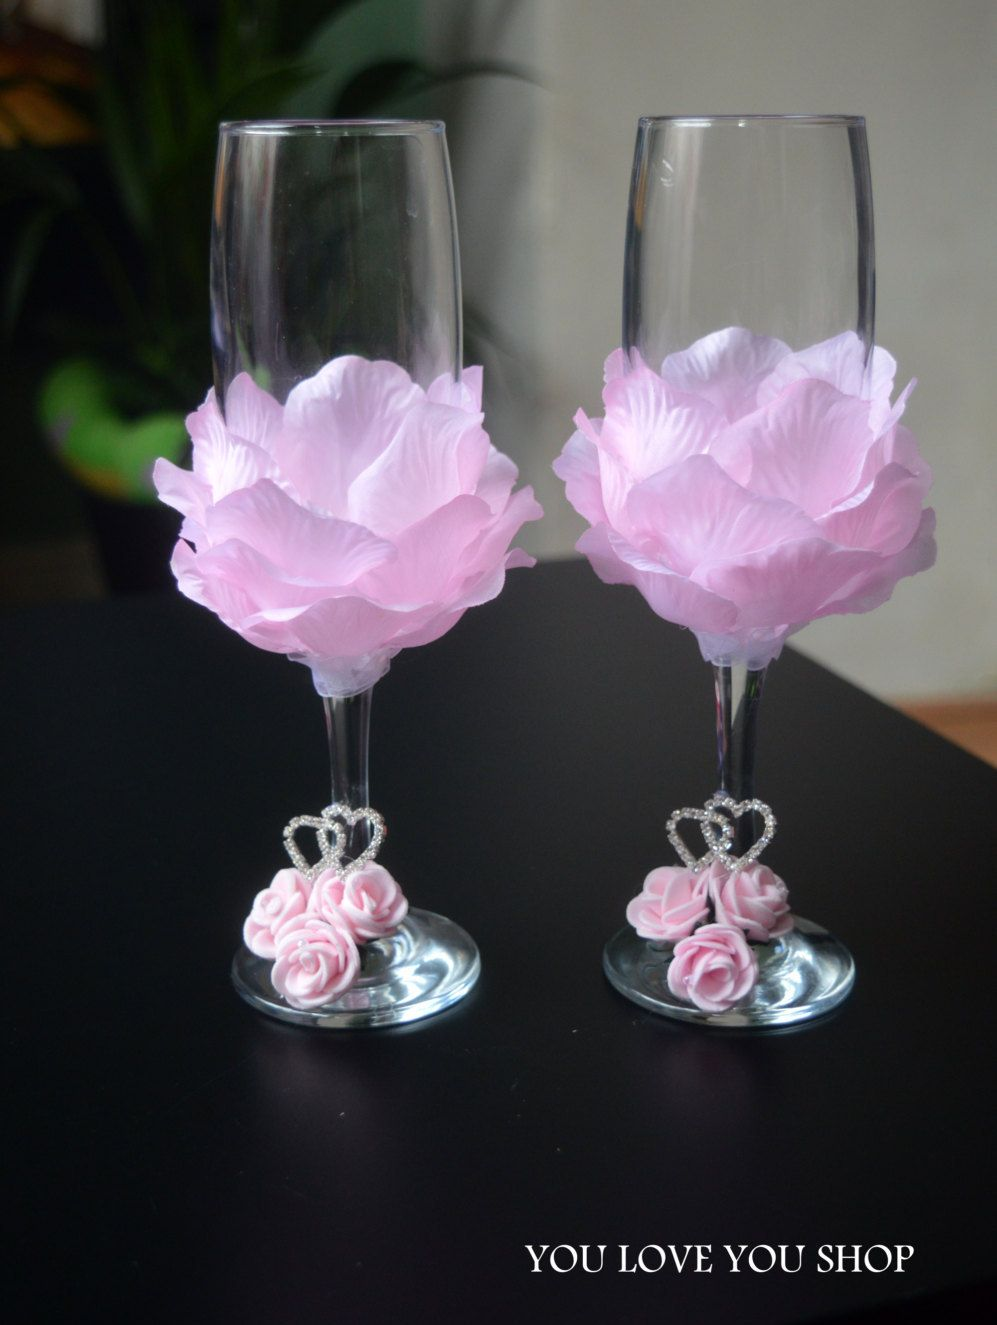 Wedding Flutes Pink Petal Couple Toasting Anniversary Champagne Glasses For Reception Gift Candles Full